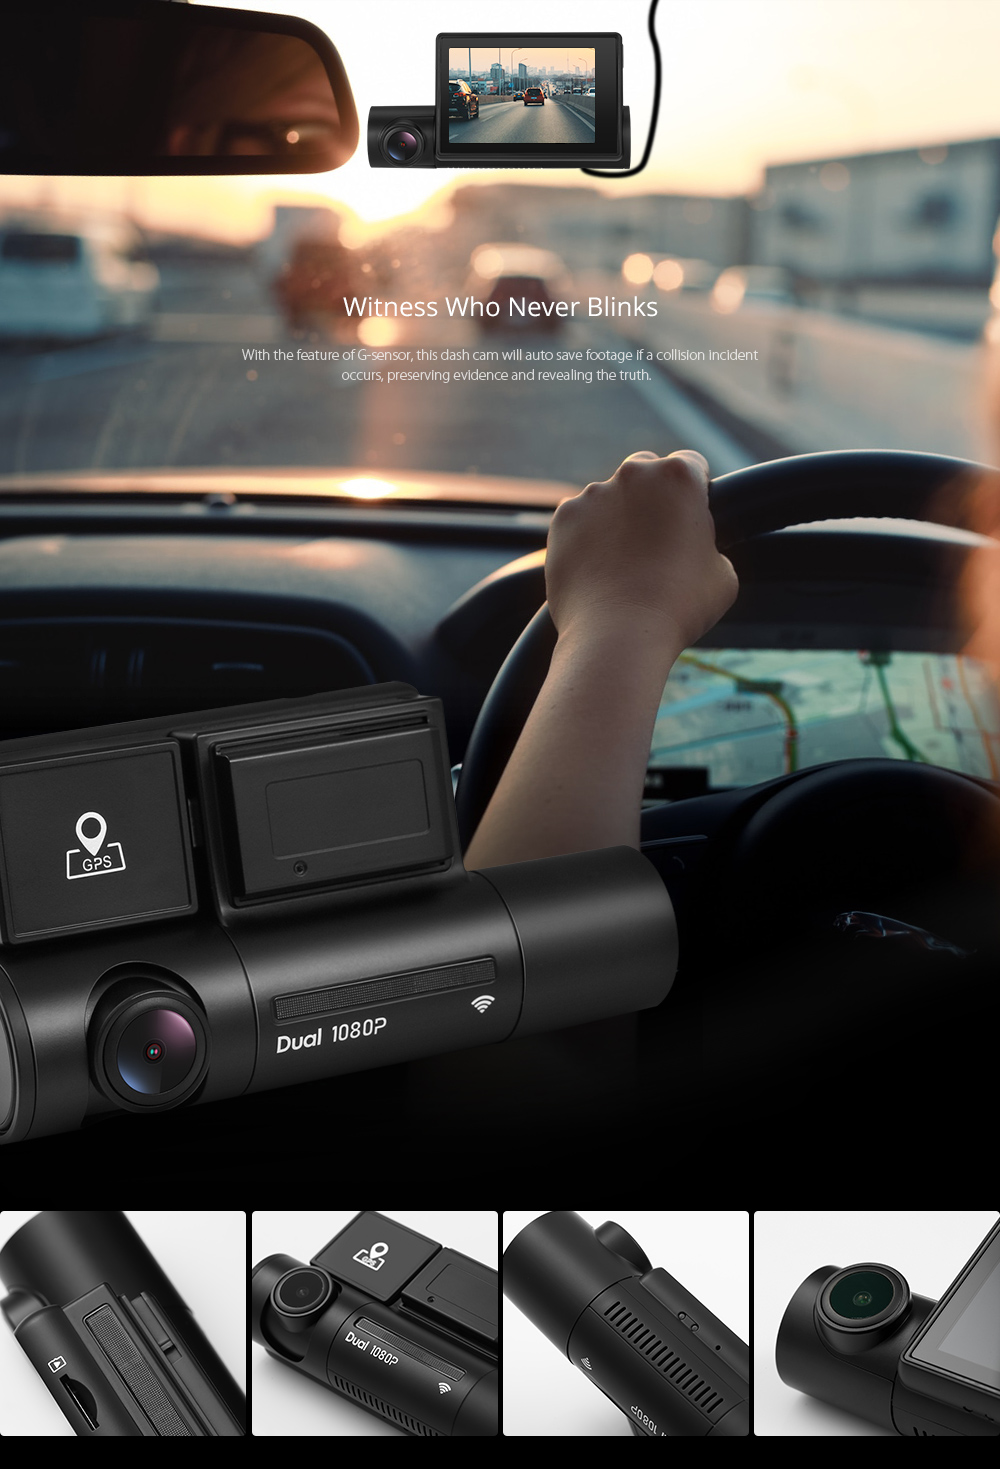 Alfawise LS02 Dash Cam 1080P Smart WiFi Car DVR Dual Camera and Supercapacitors- Black